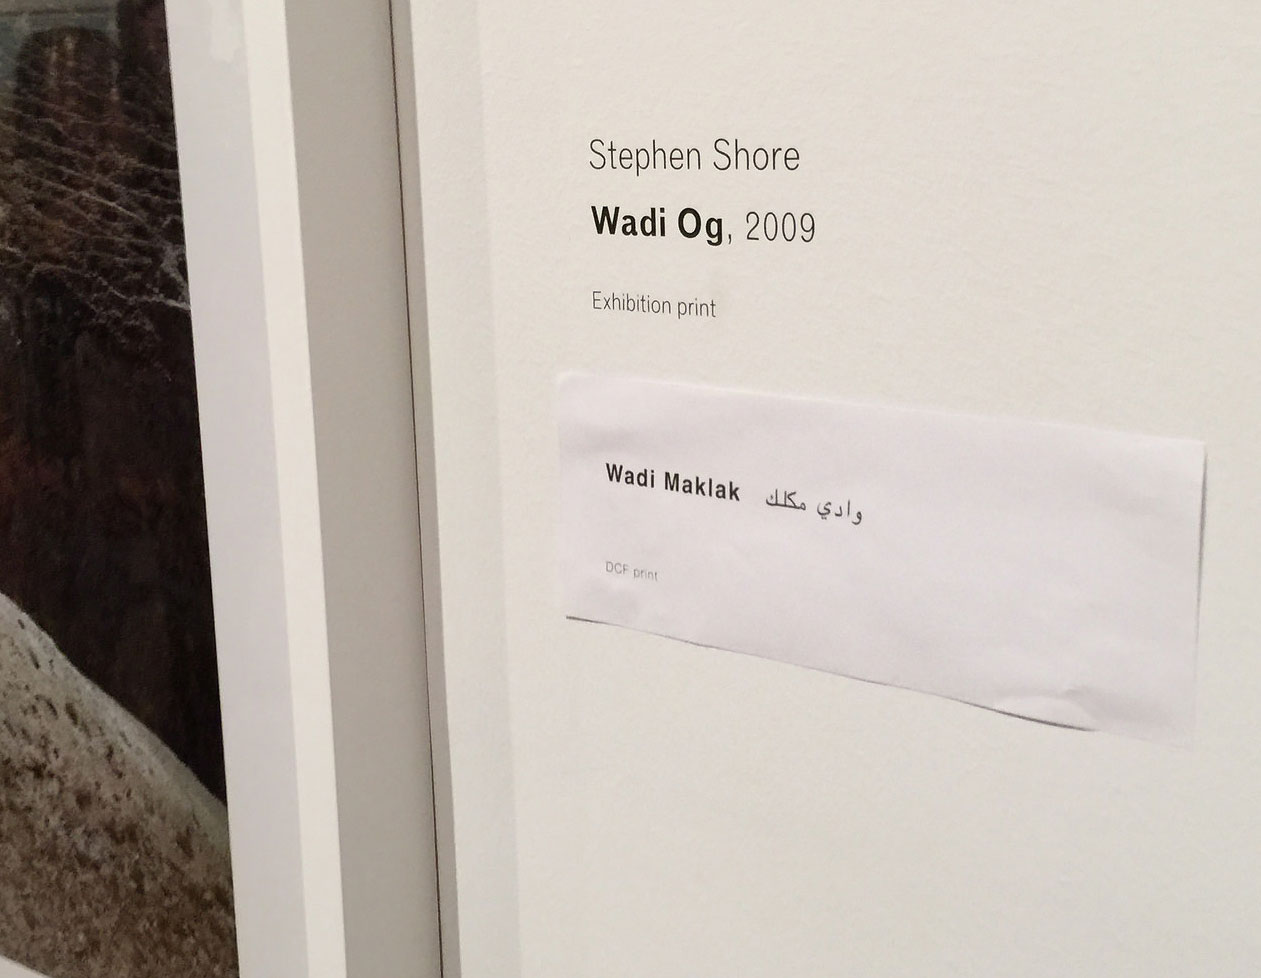 Protesters pointed out that Stephen Shore's photographs do not acknowledge the original Arabic names of the places he photographed. (photo Hrag Vartanian/Hyperallergic) (click to enlarge)